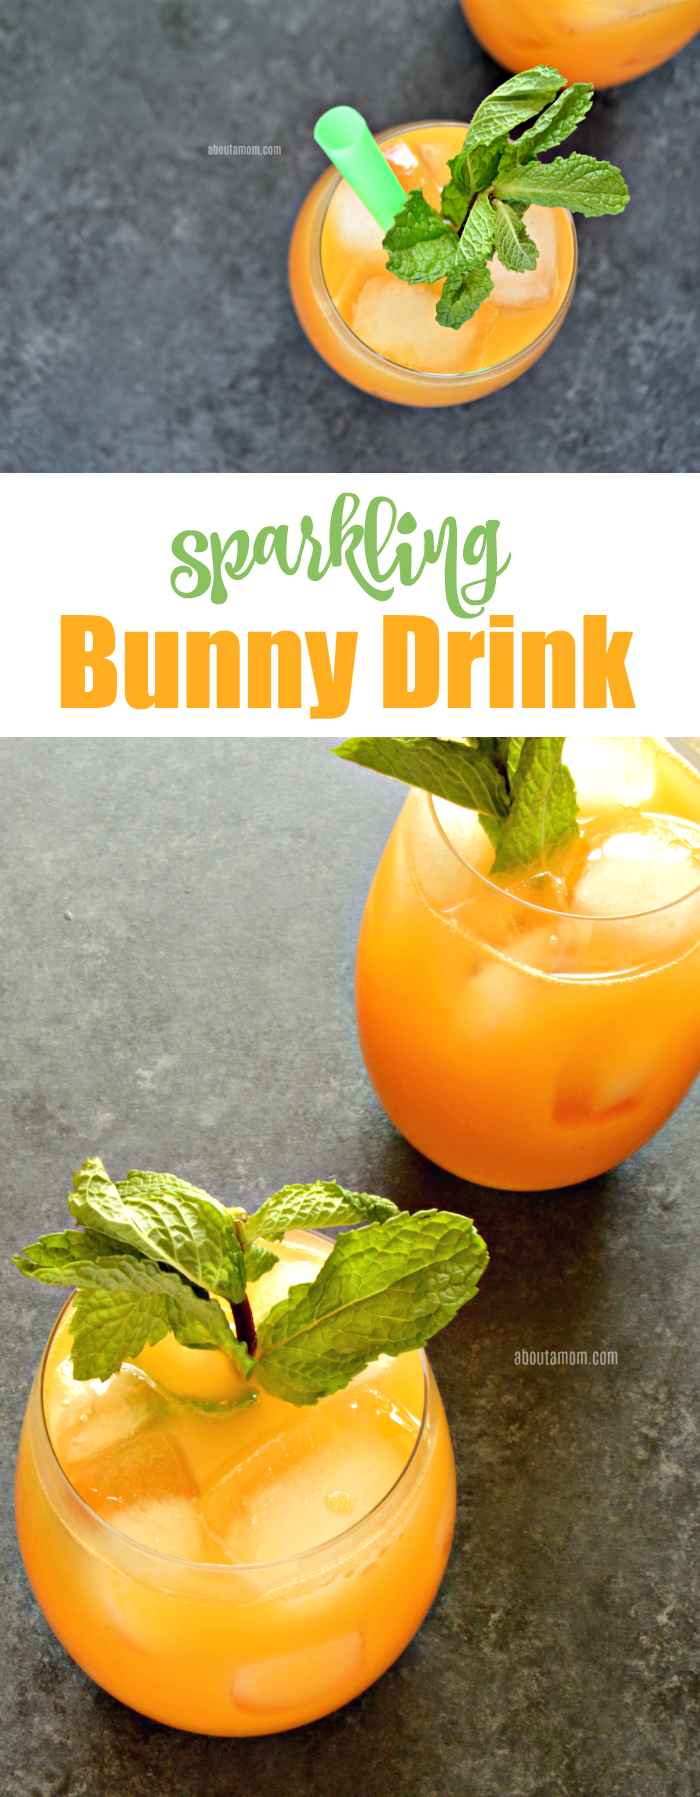 Whether you are preparing Easter Dinner or Easter Brunch, a signature drink is a must. This delicious sparkling bunny Easter drink recipe is simple to make and something the whole family will enjoy.